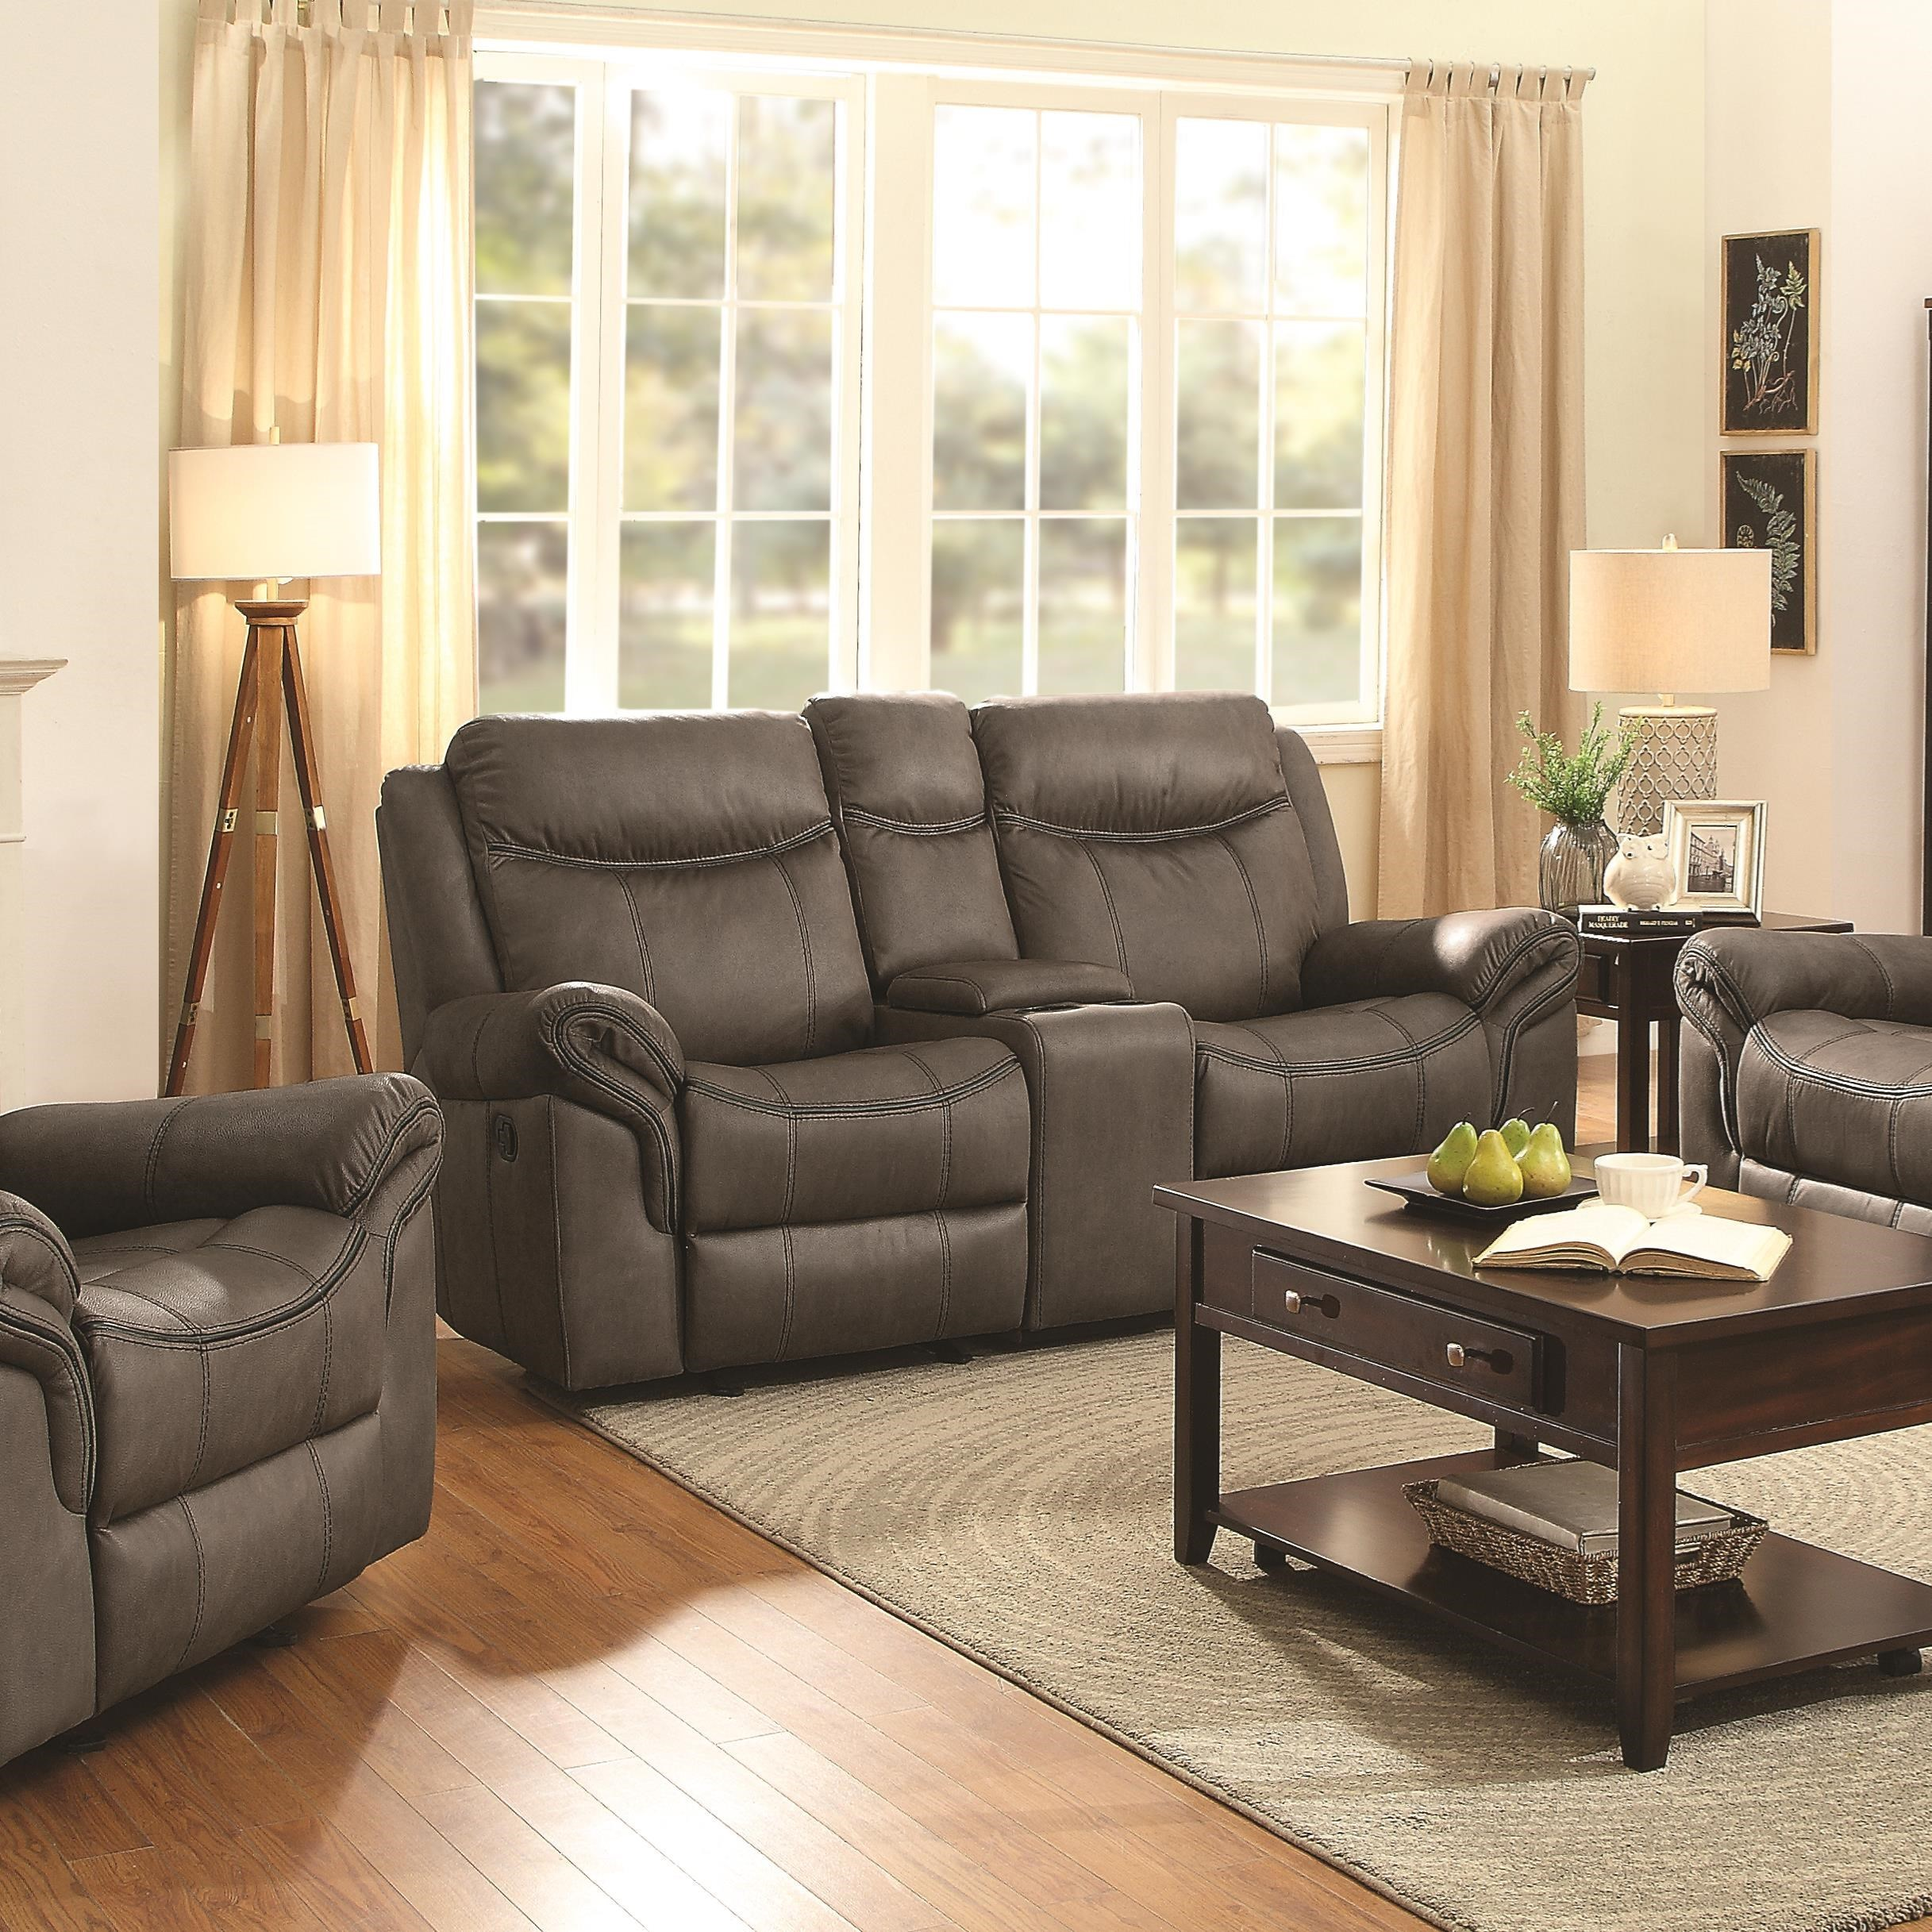 Sawyer Motion Glider Motion Loveseat by Coaster at Northeast Factory Direct